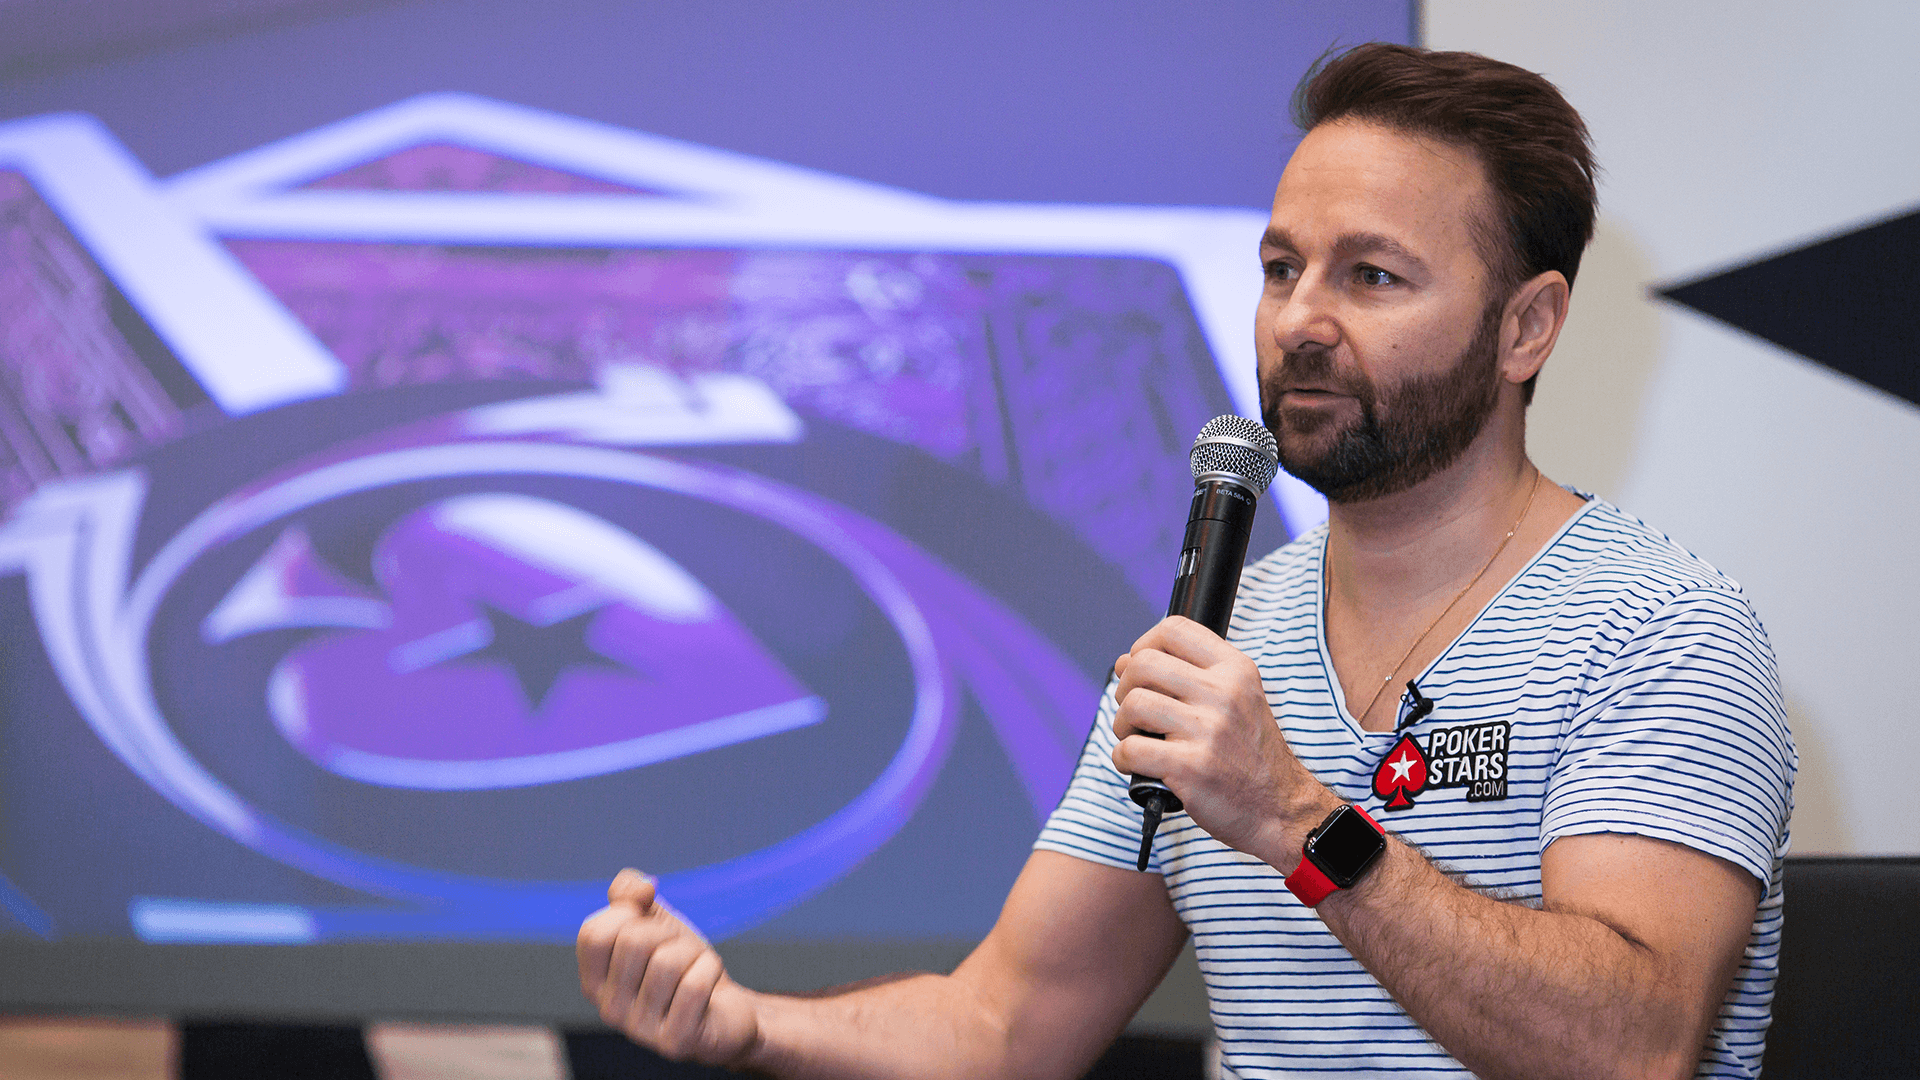 Pokerspieler Daniel Negreanu im Interview